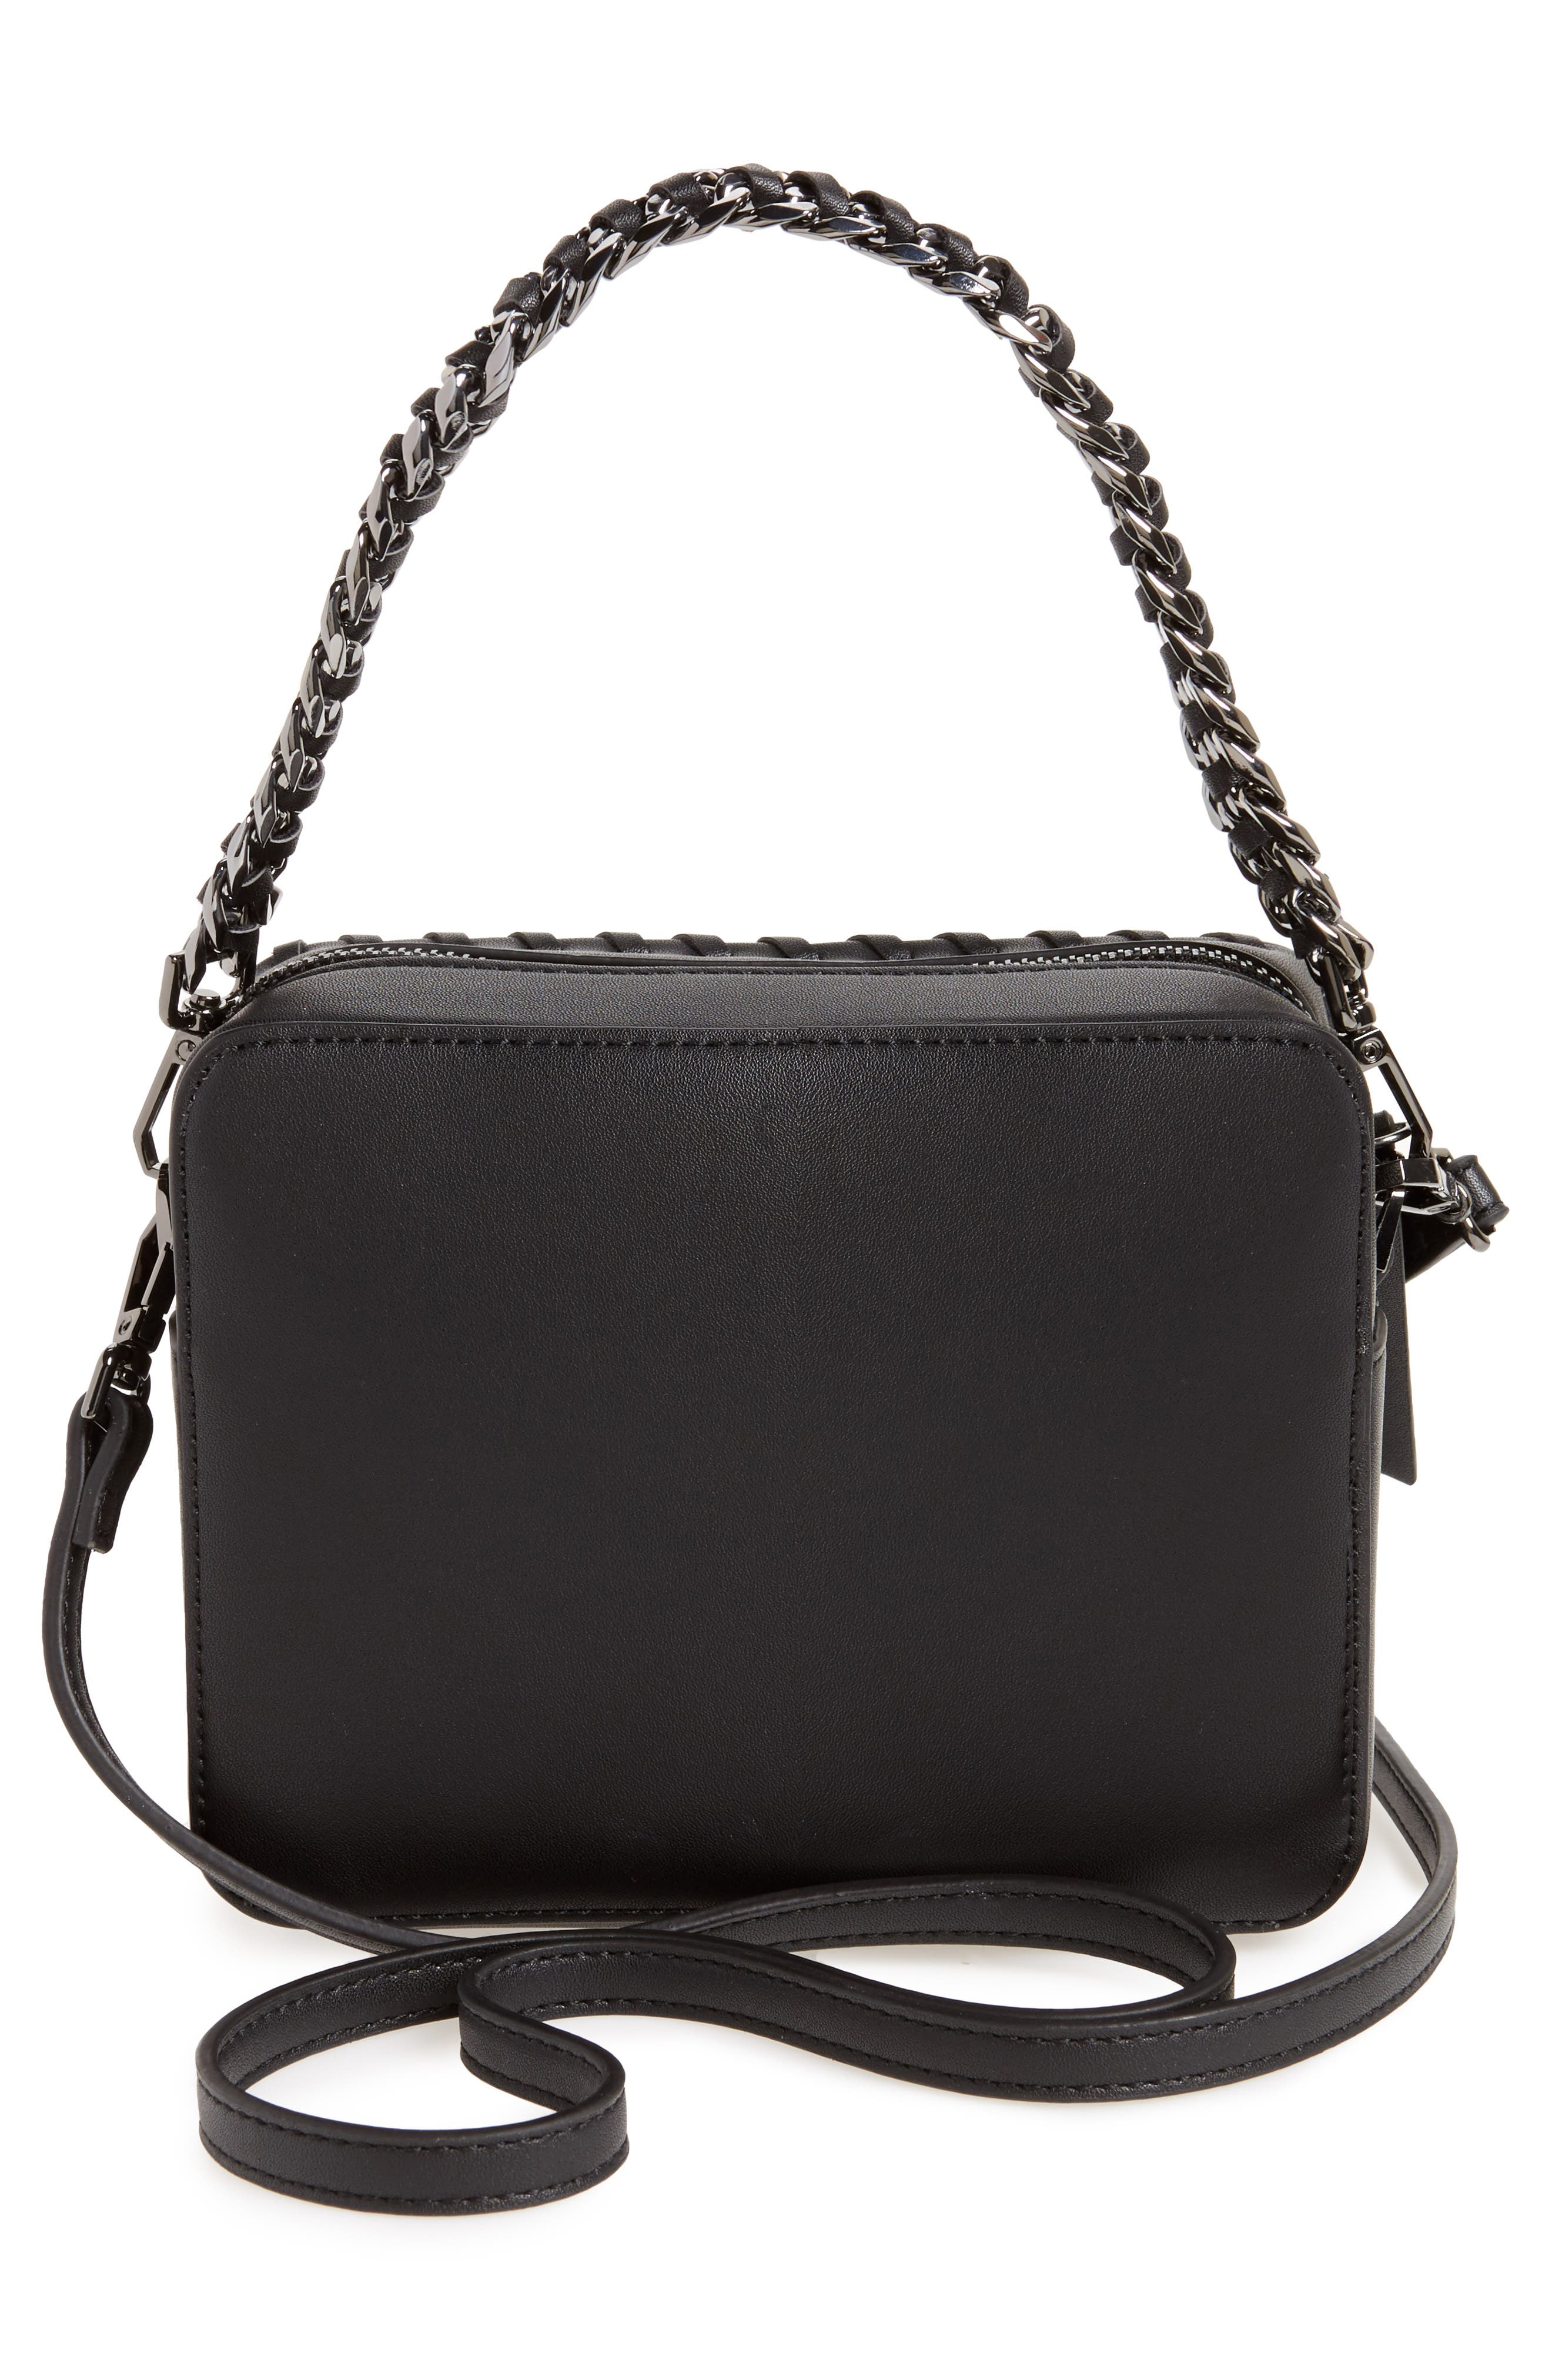 Rogue Whipstitch Faux Leather Crossbody Bag,                             Alternate thumbnail 3, color,                             001